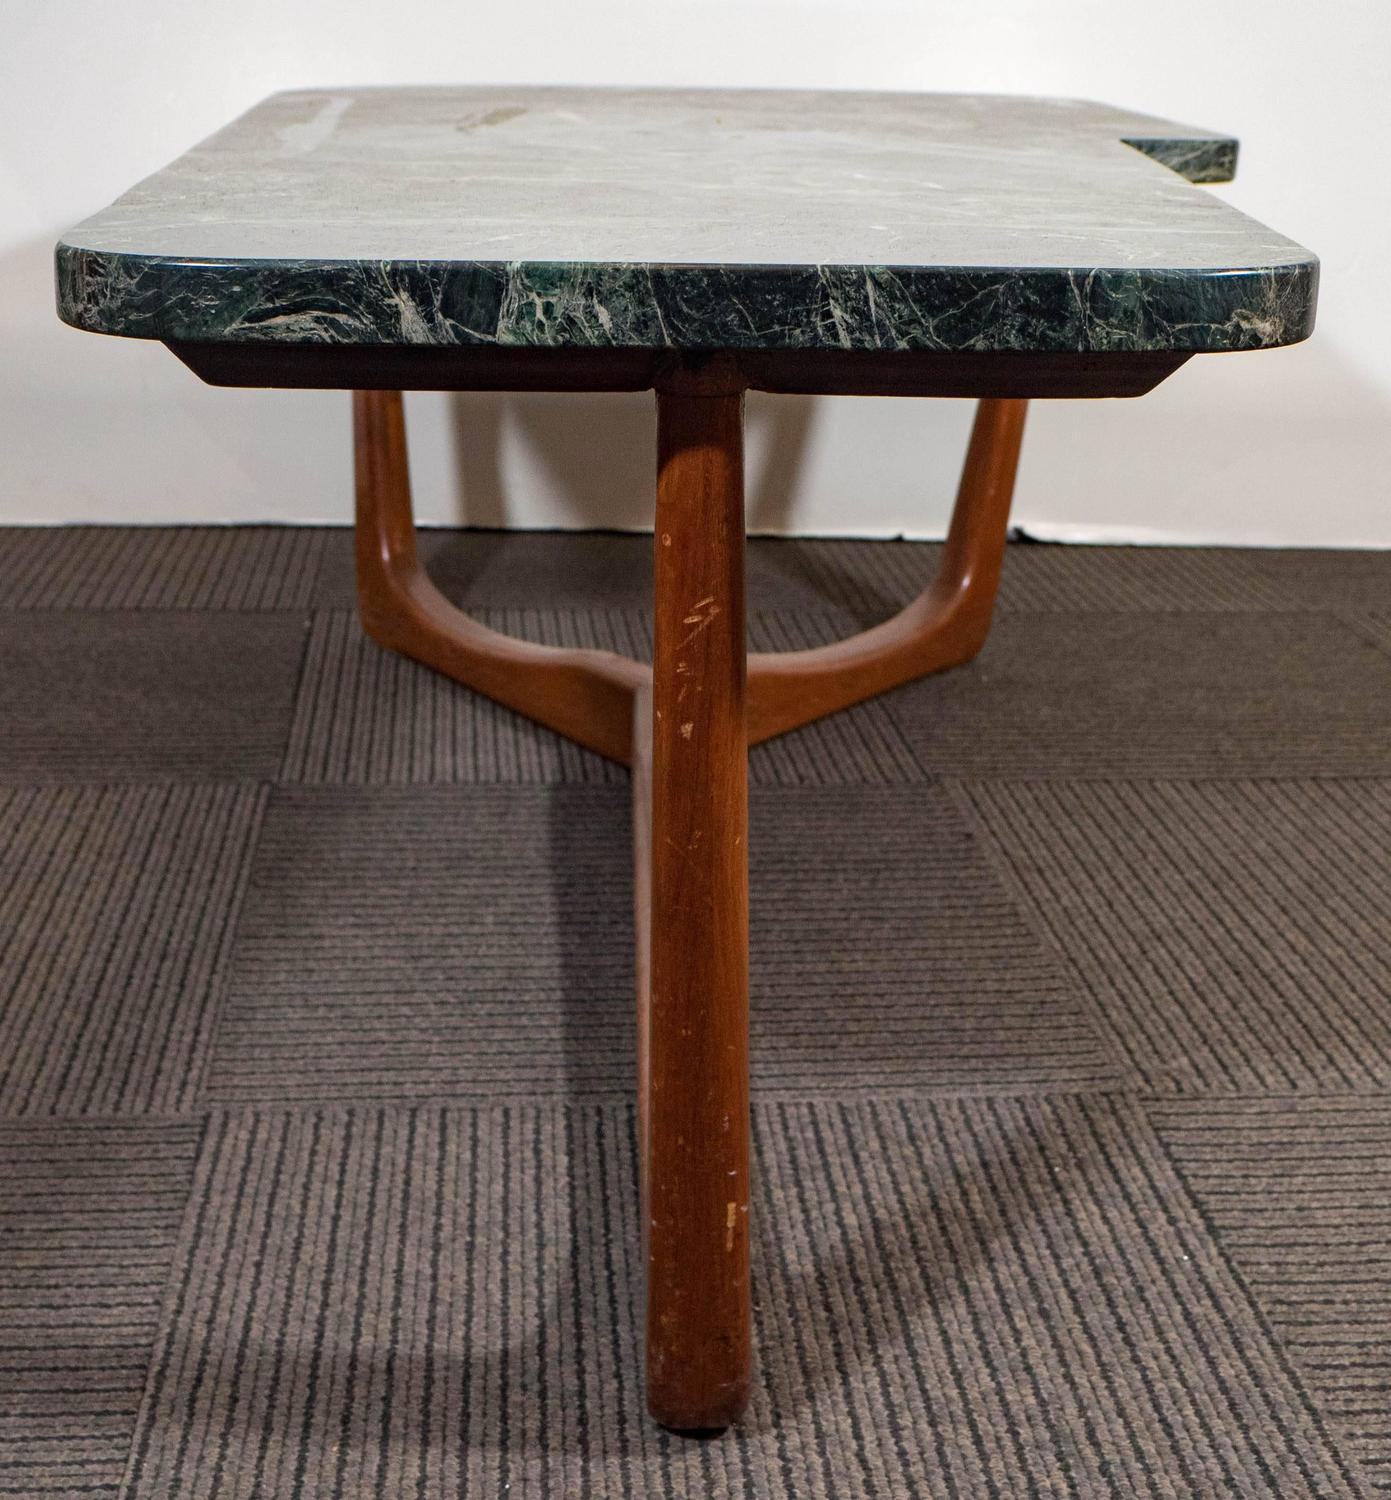 New York Marble Coffee Table: Vladimir Kagan Style Asymmetric Coffee Table With Green